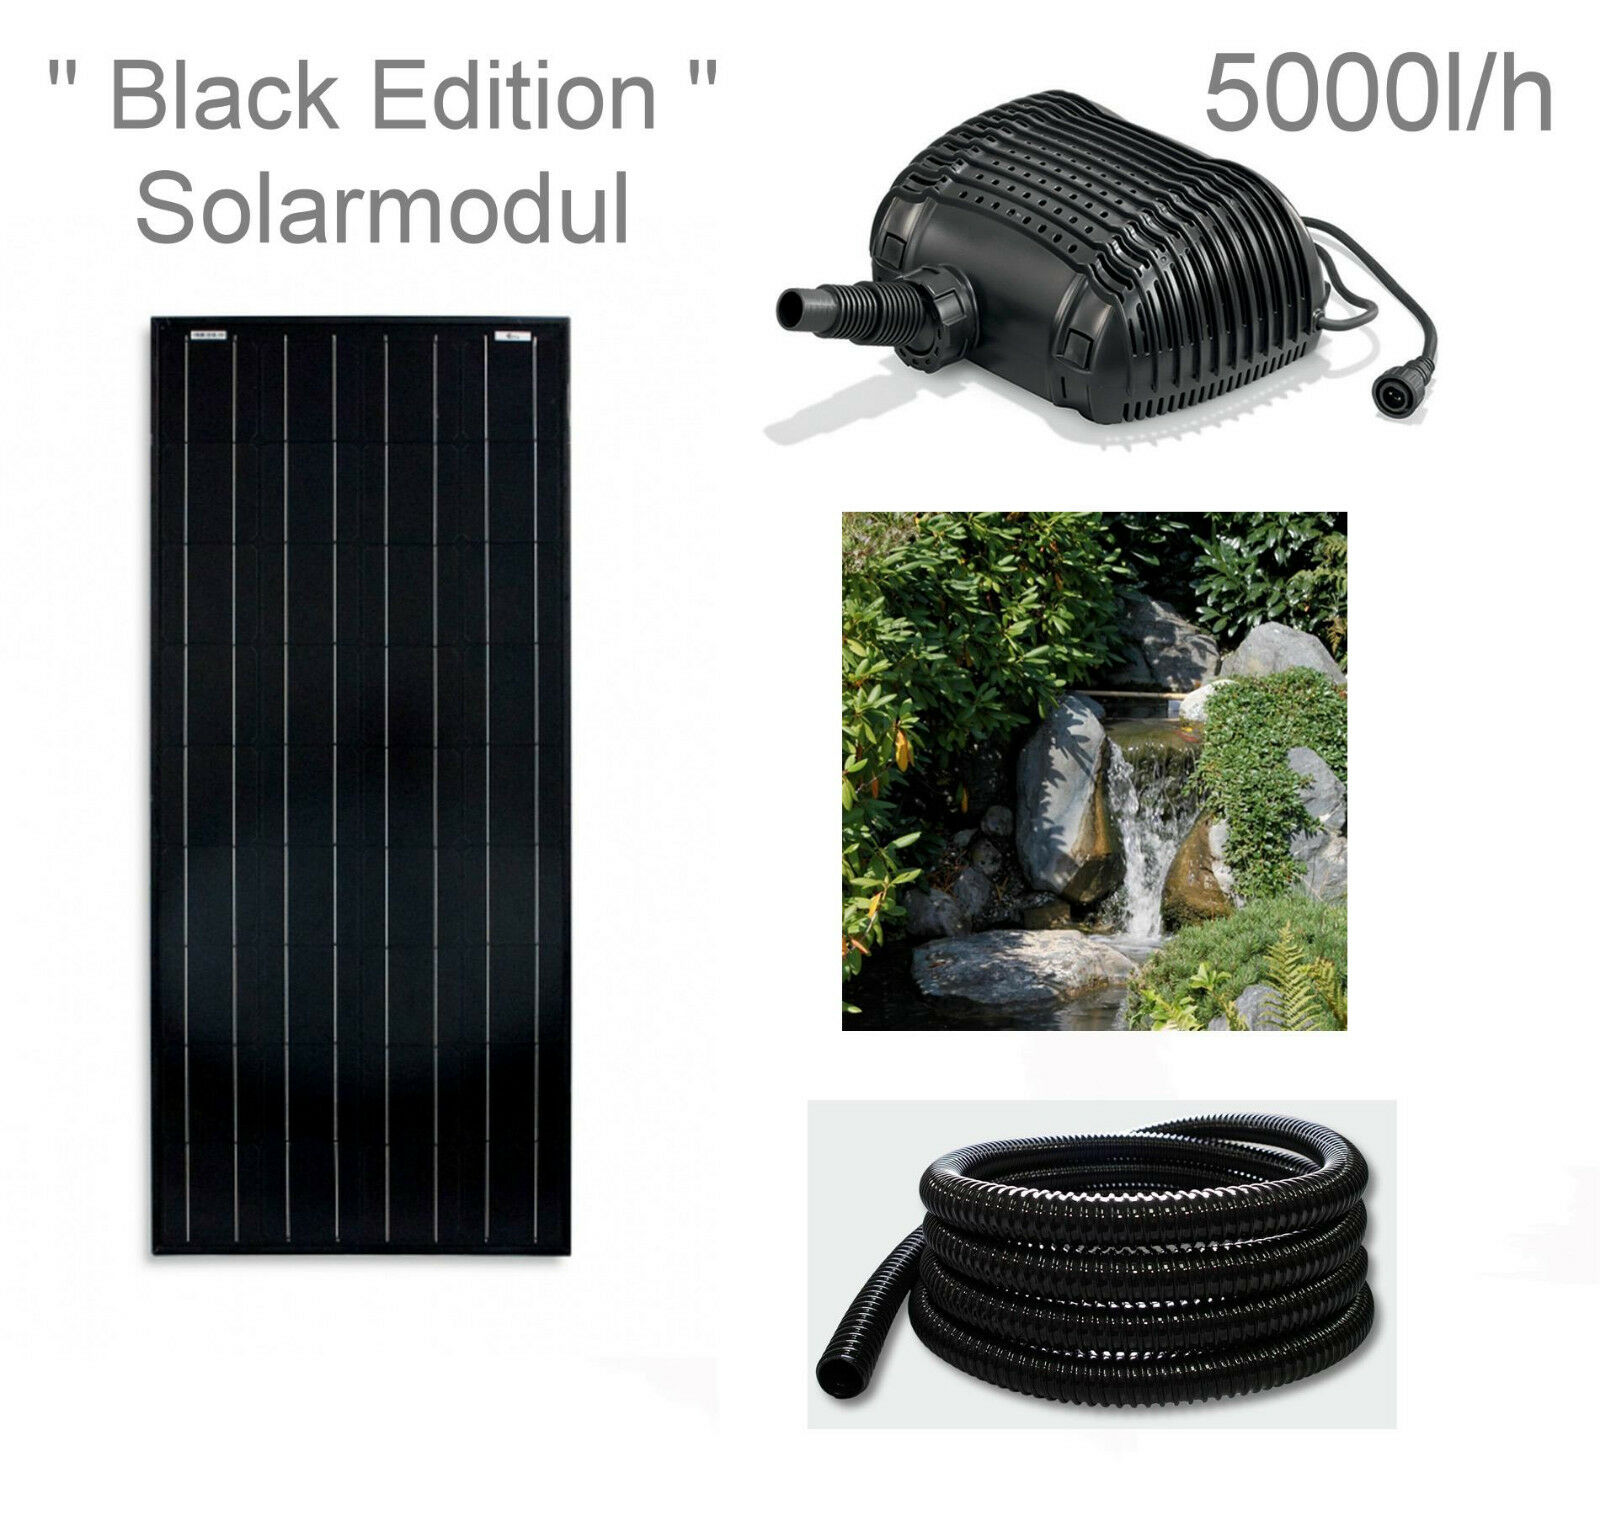 100w solar teichpumpe bachlaufpumpe filter tauch pumpe solarpumpe gartenteich eur 259 00. Black Bedroom Furniture Sets. Home Design Ideas